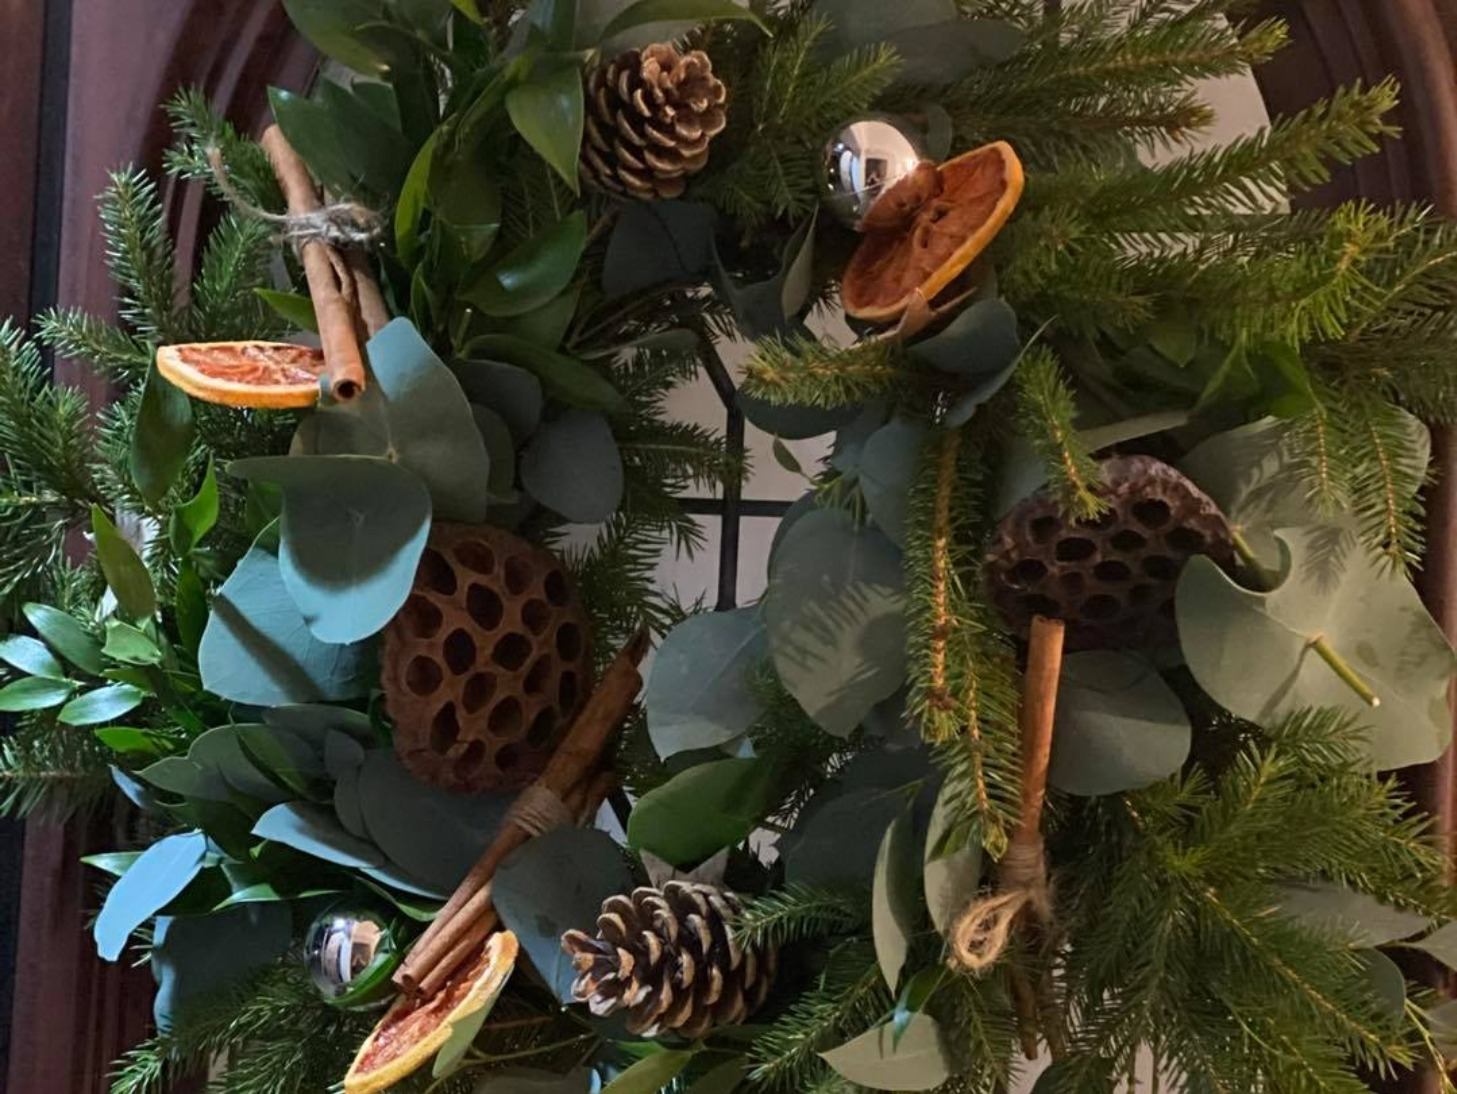 Festive Afternoon Tea and Wreath Making (Wednesday 8th December Workshop Room 1: 3pm-6pm) DEPOSIT